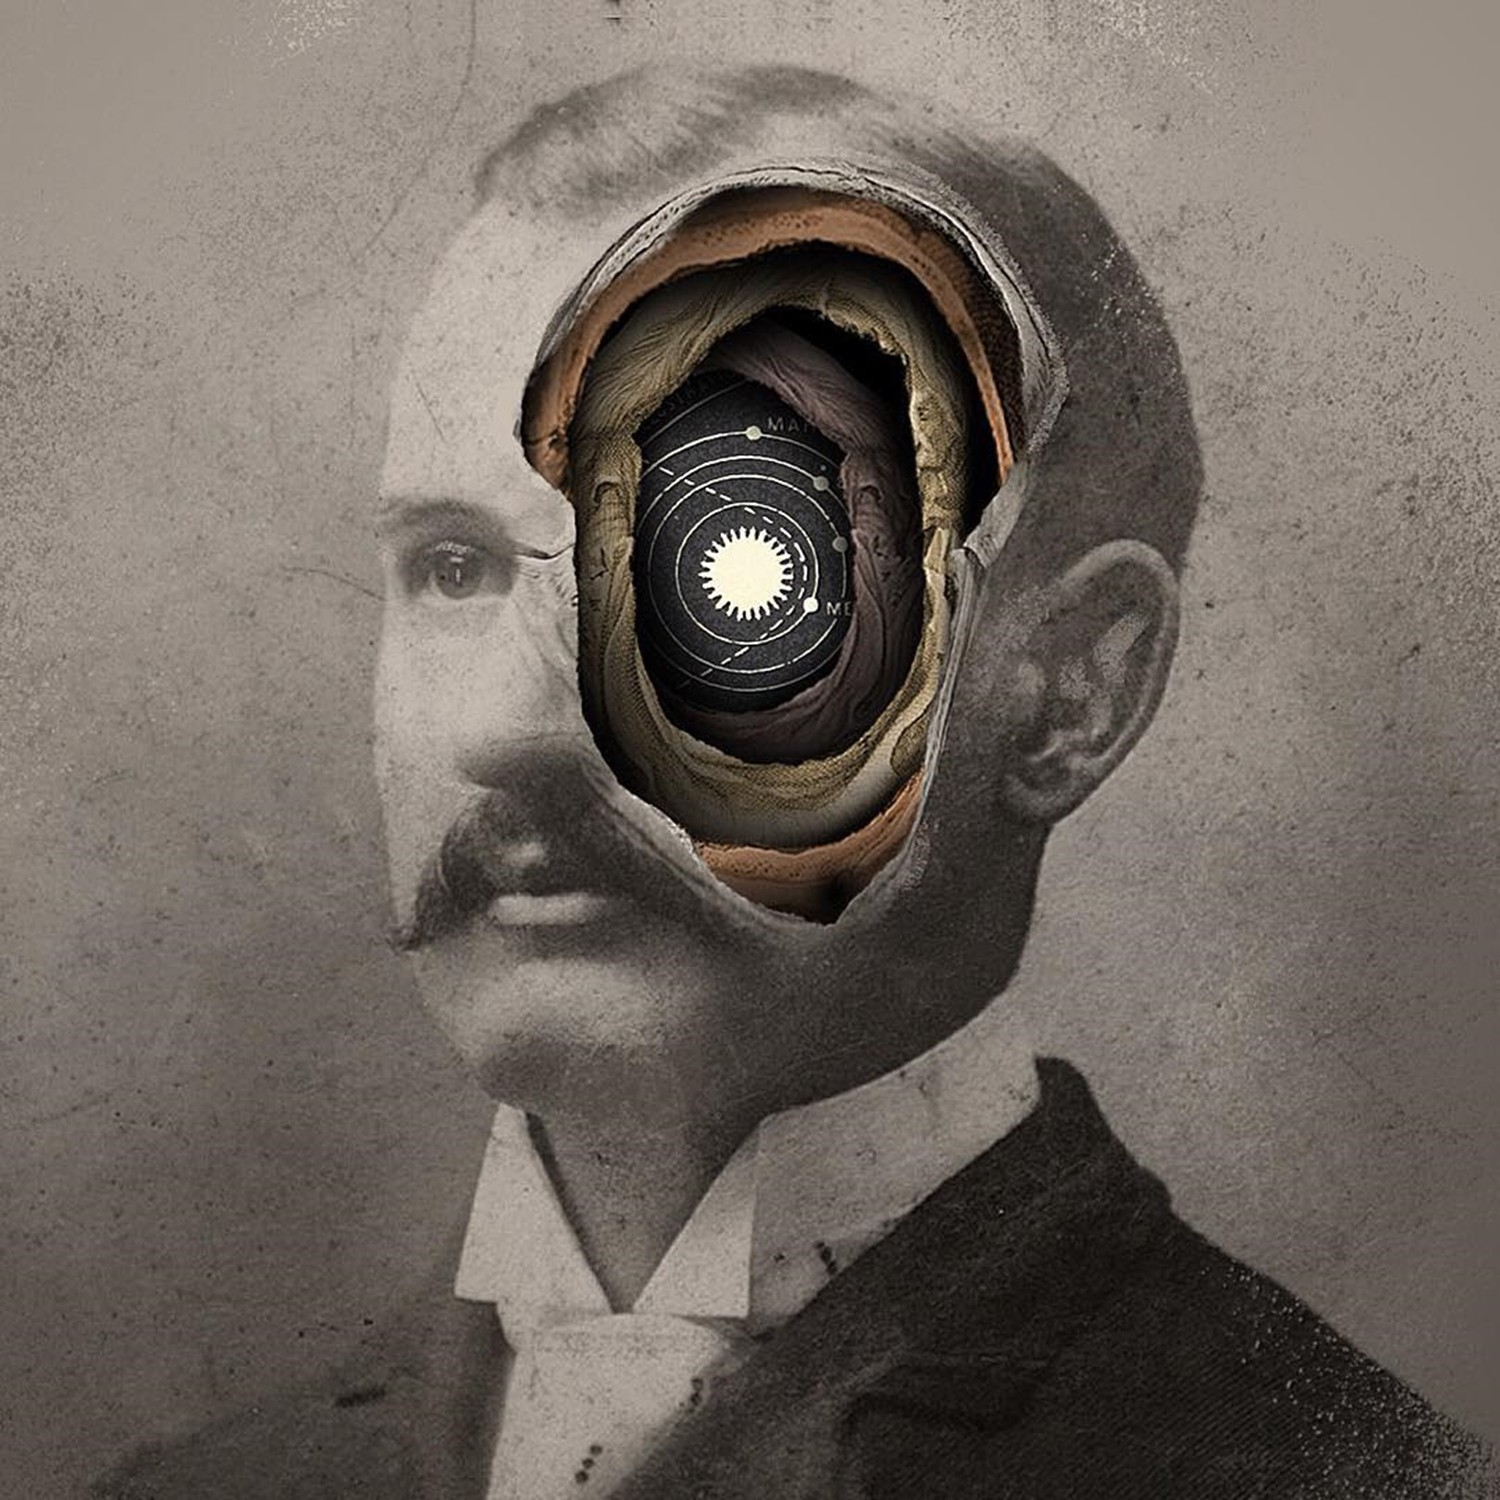 hole in eye, portrait